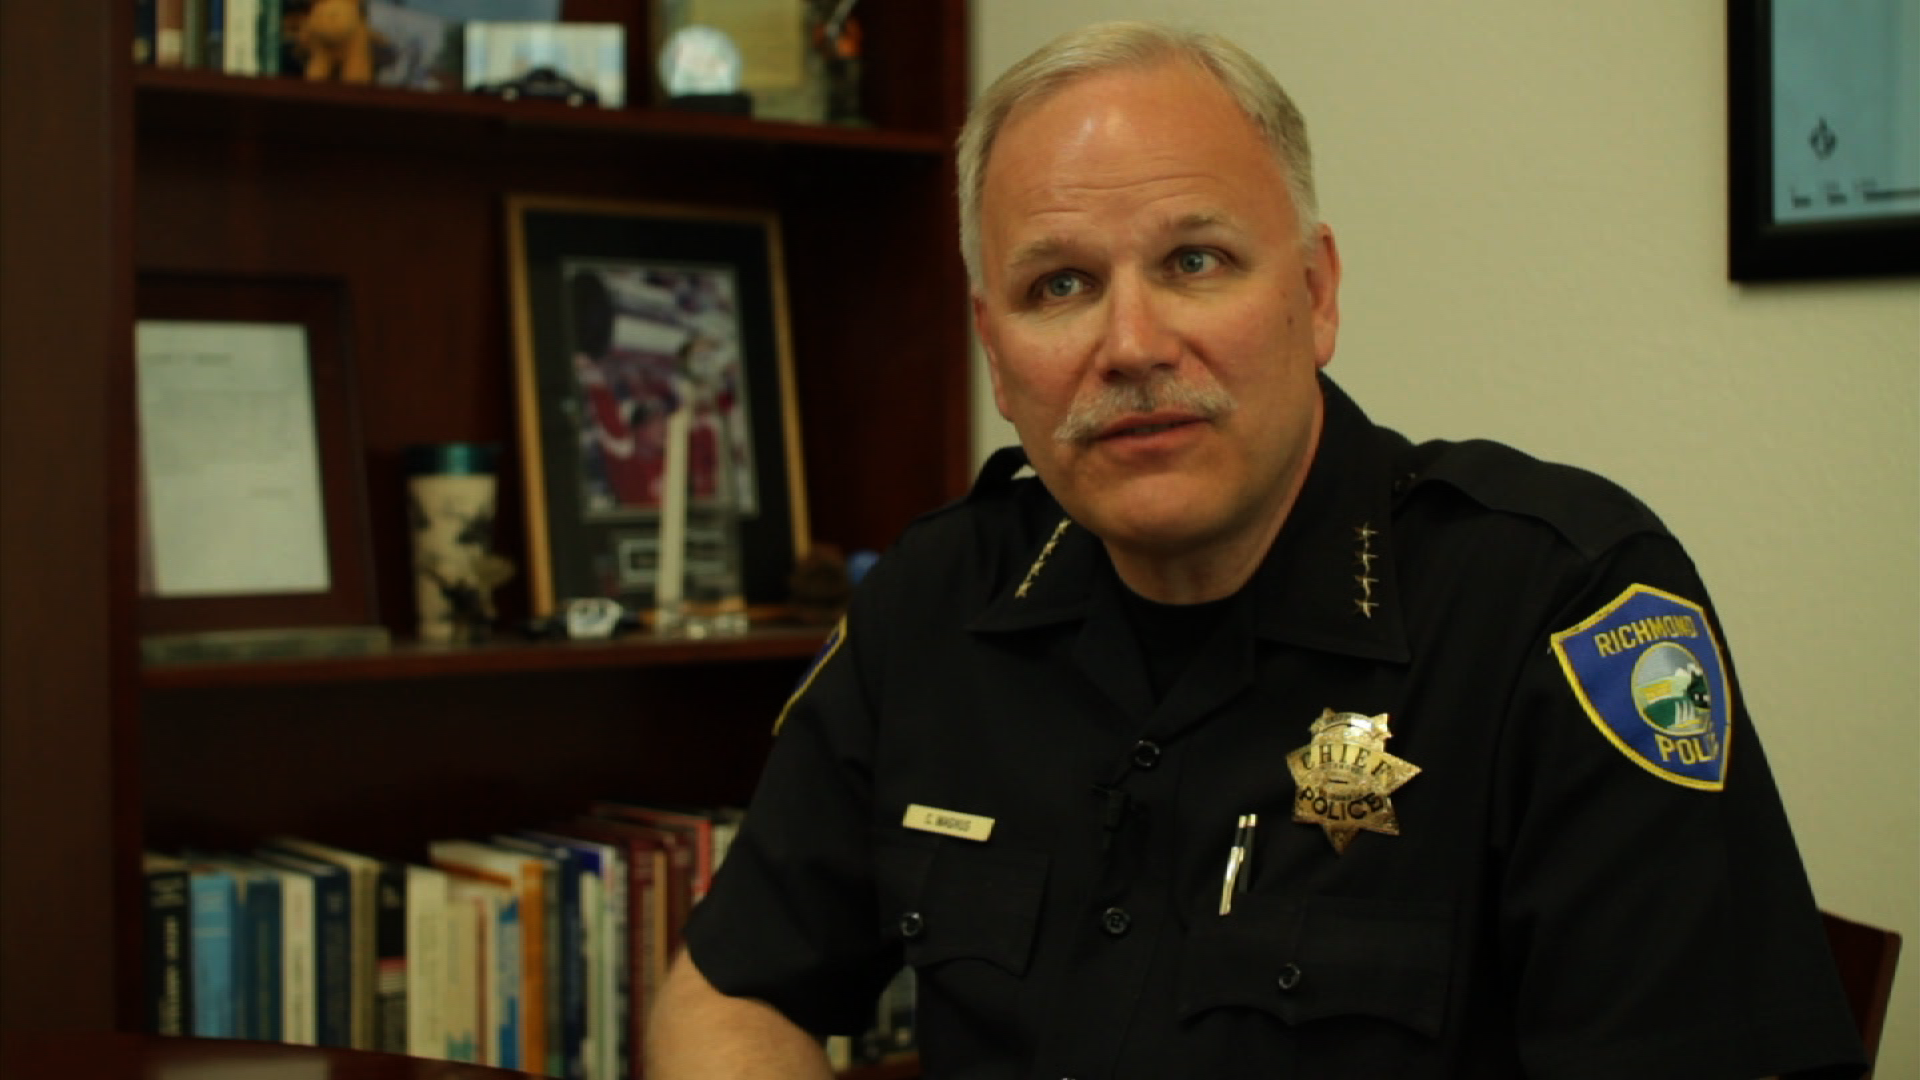 Q&A: Chief Magnus on Dirty Cops, Curfews and Violence